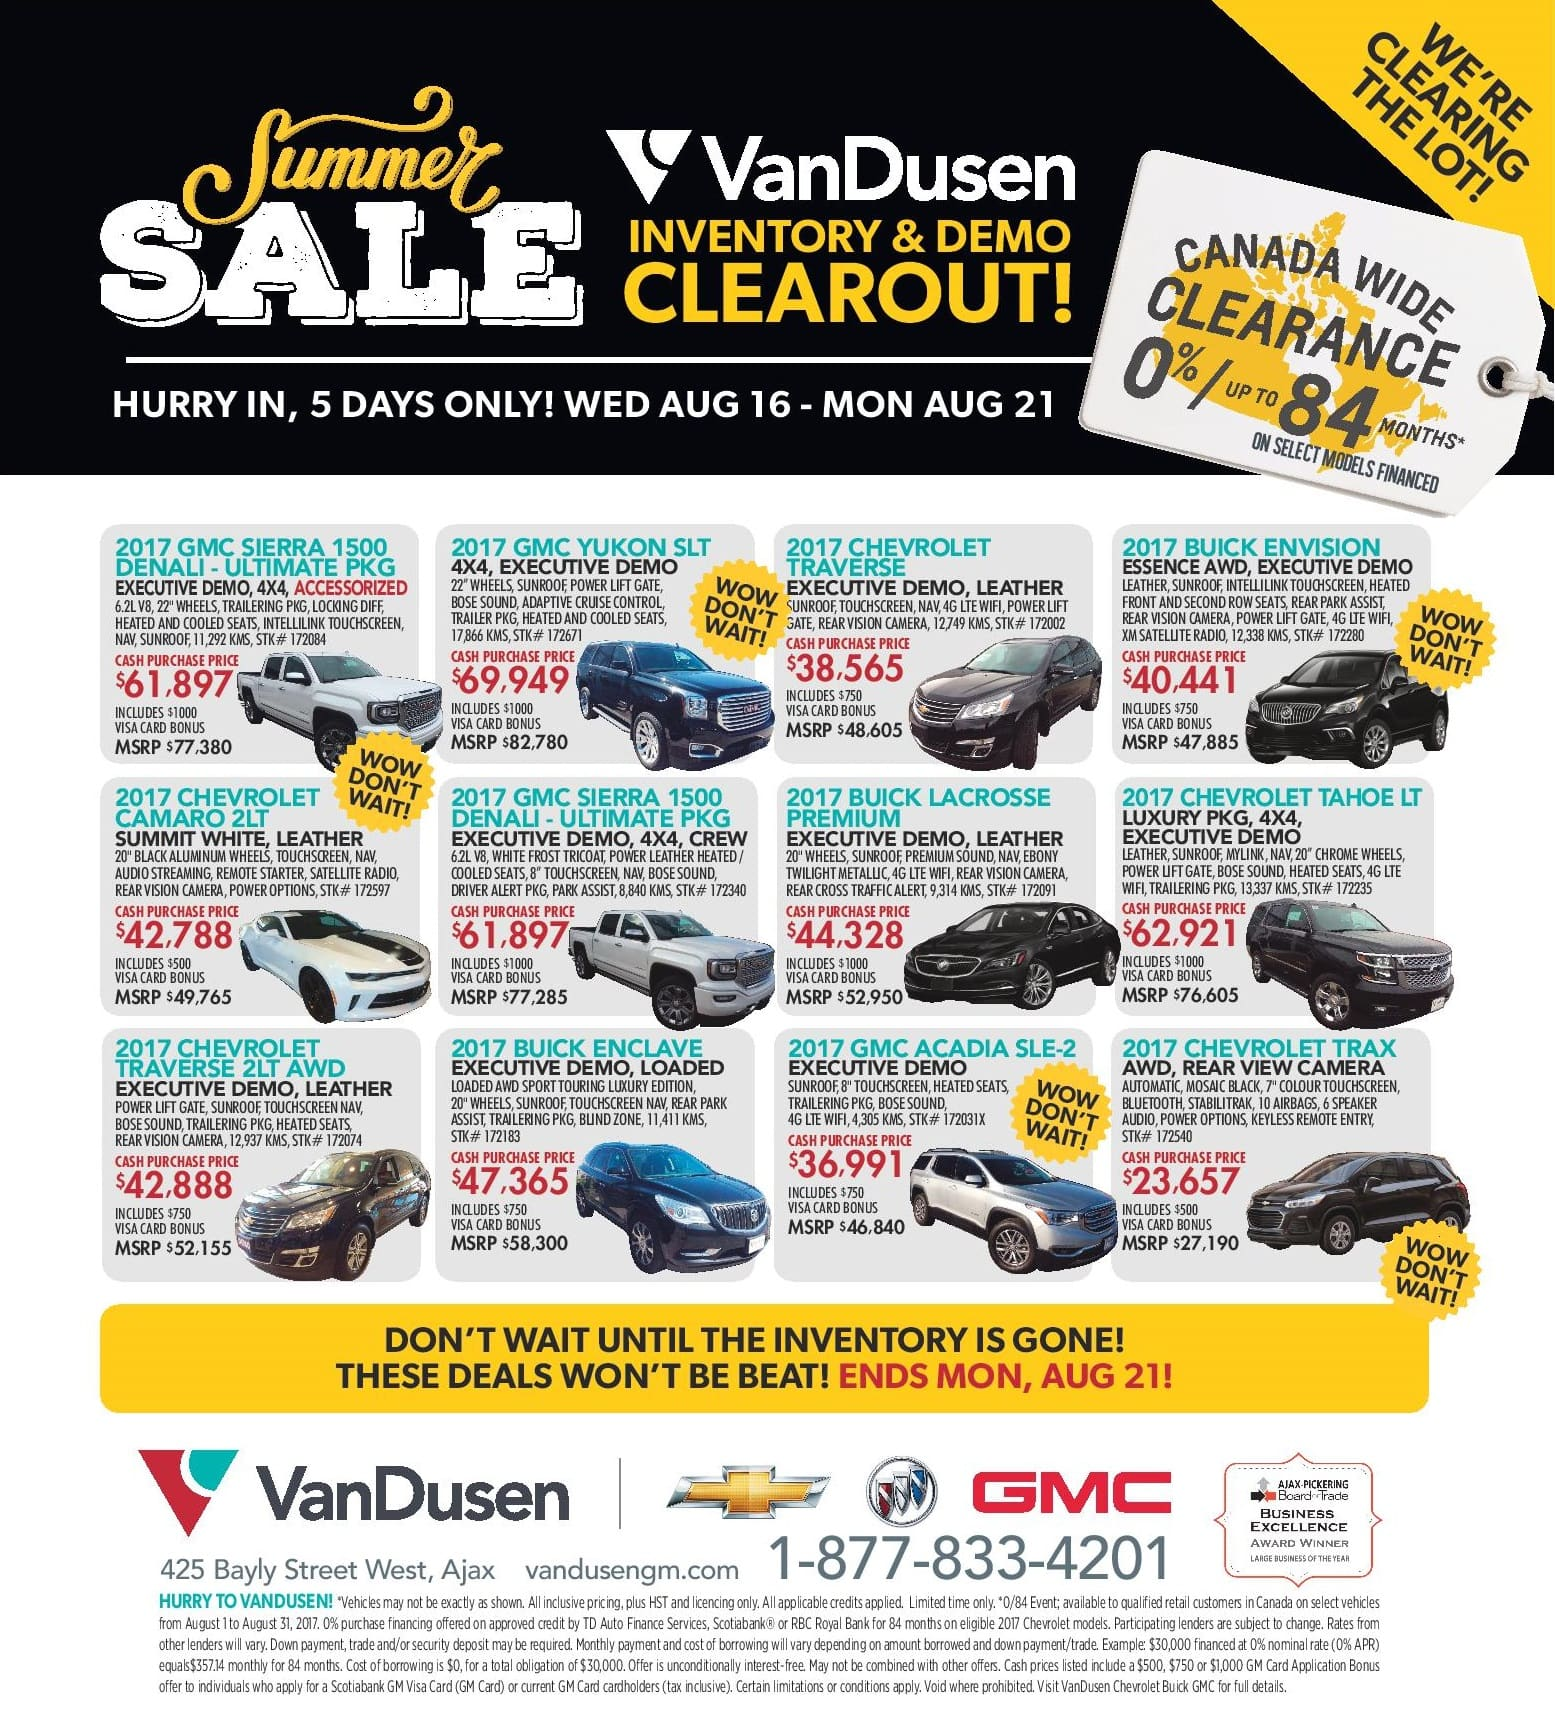 Canada Wide Clearance August Sale Ajax Durham Region